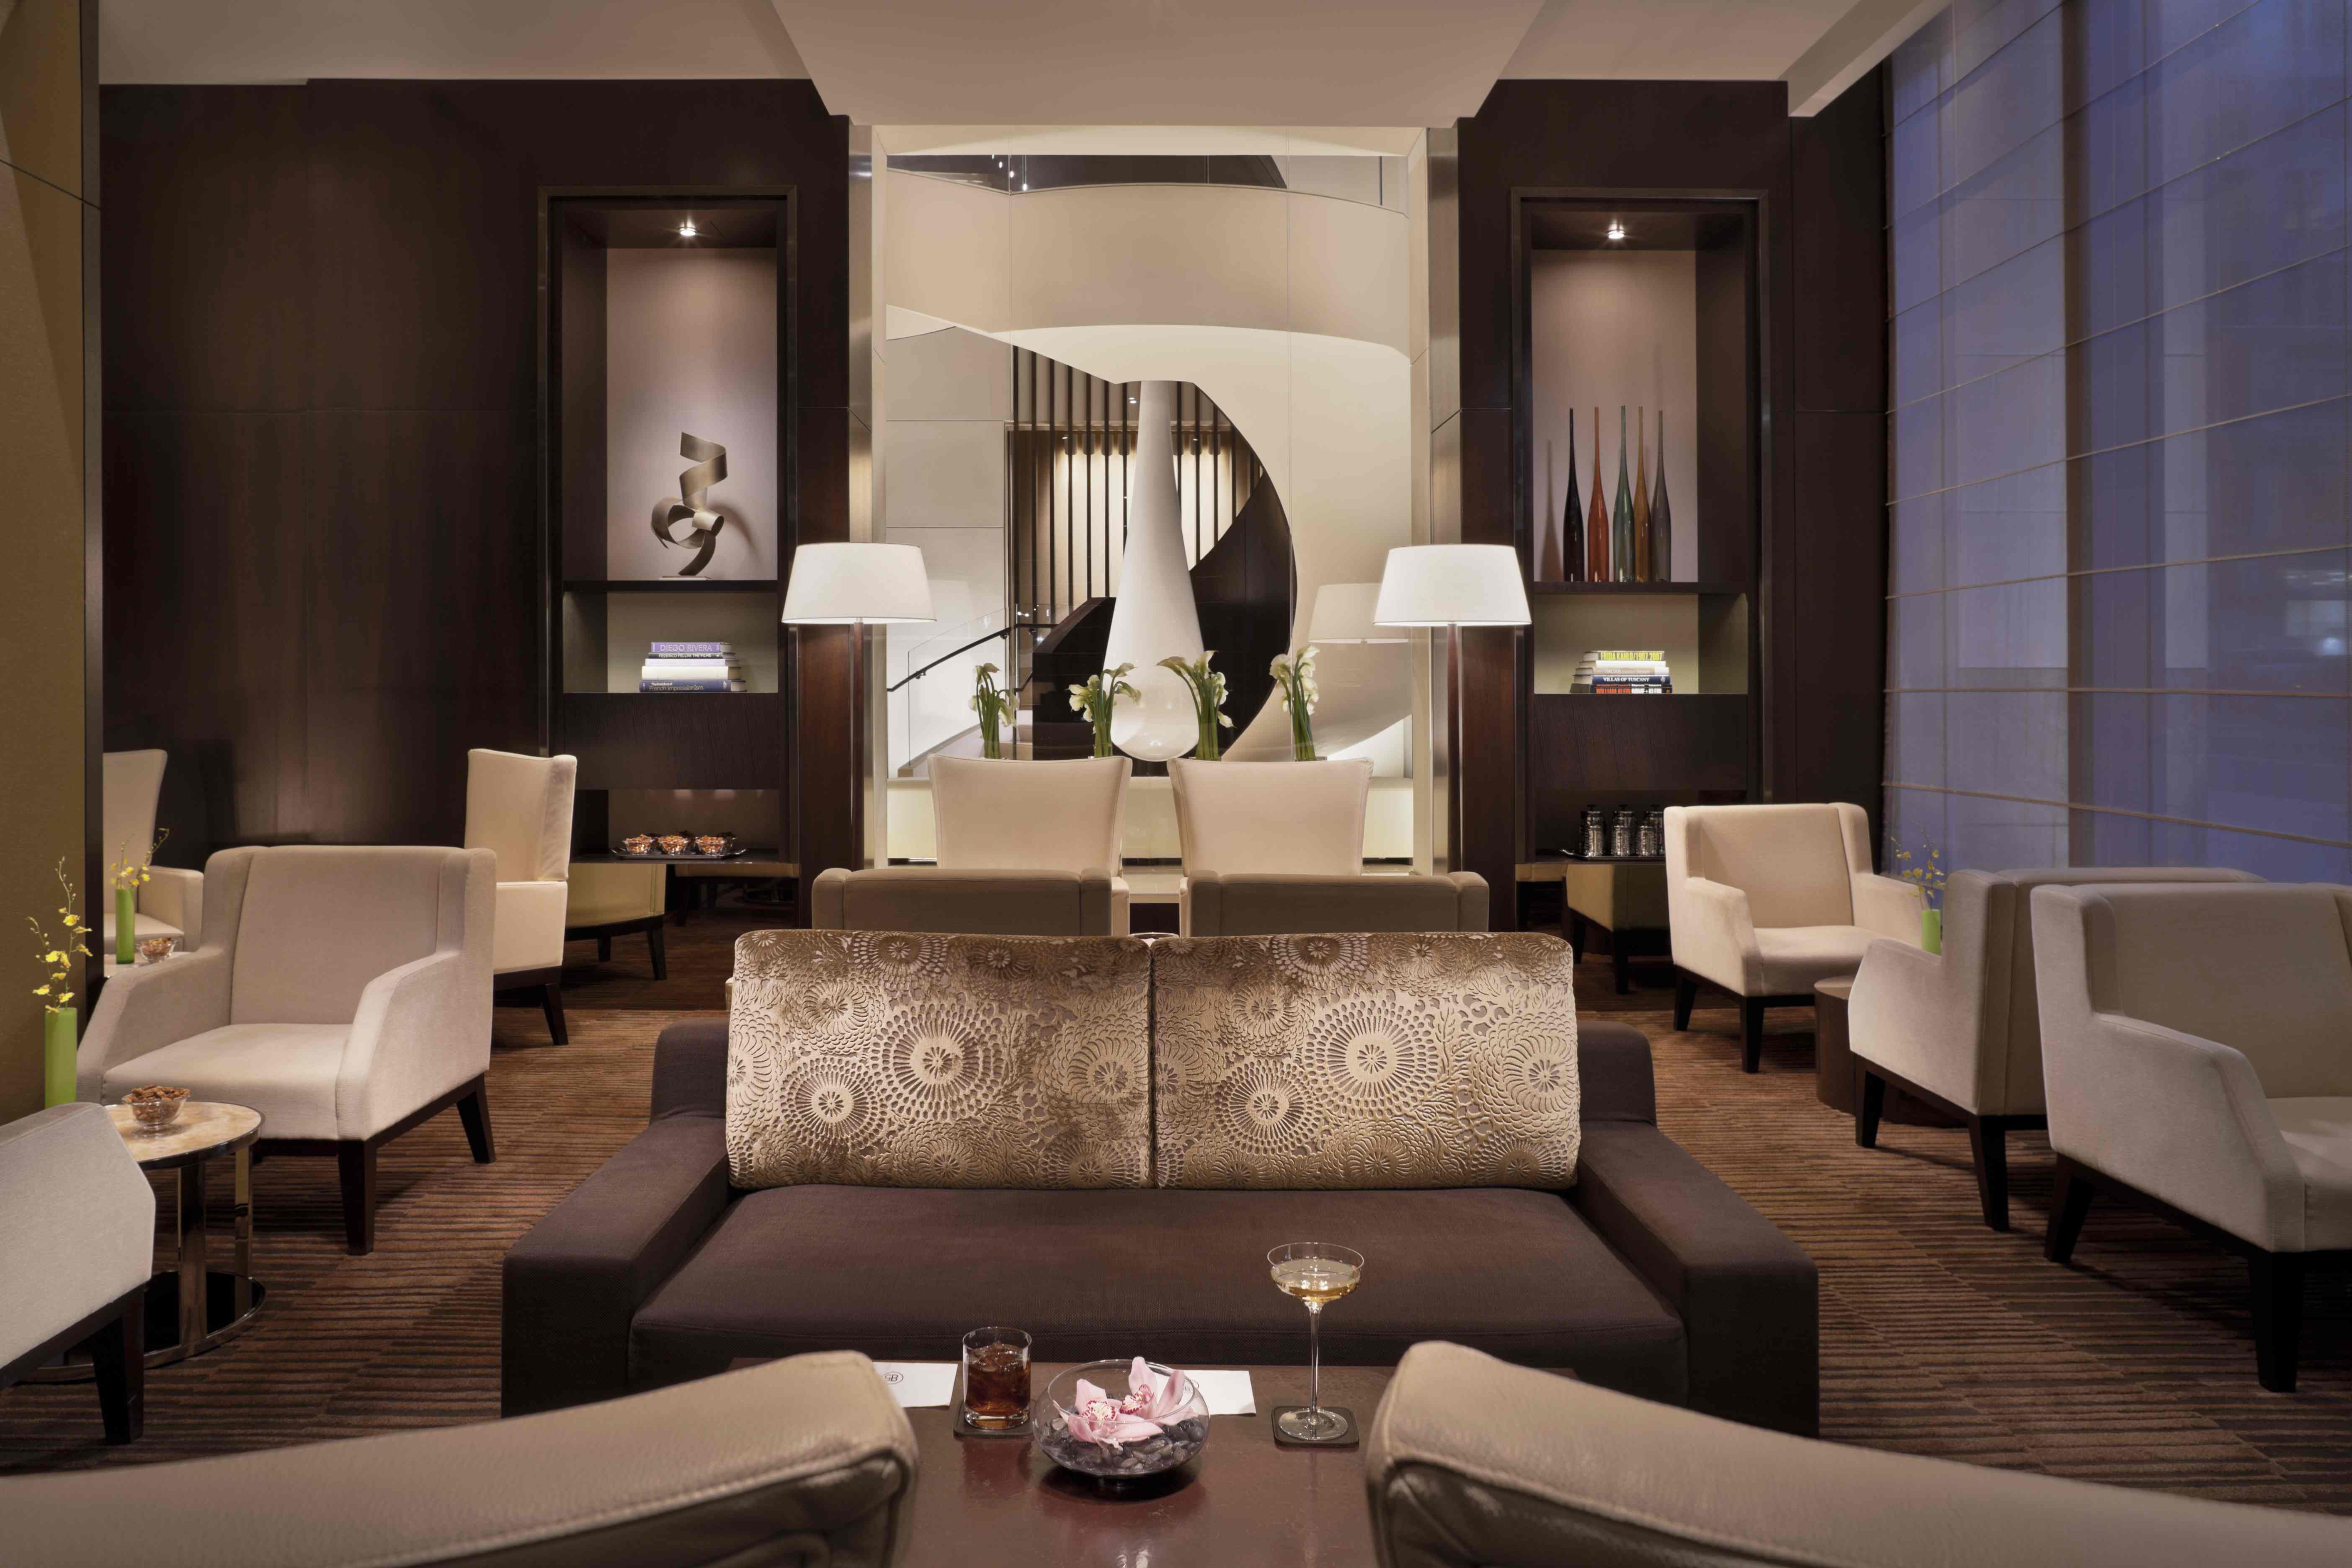 Haute Spot The Setai Fifth Avenue 39 S Bar On Fifth Debuts Jazz Pianist And